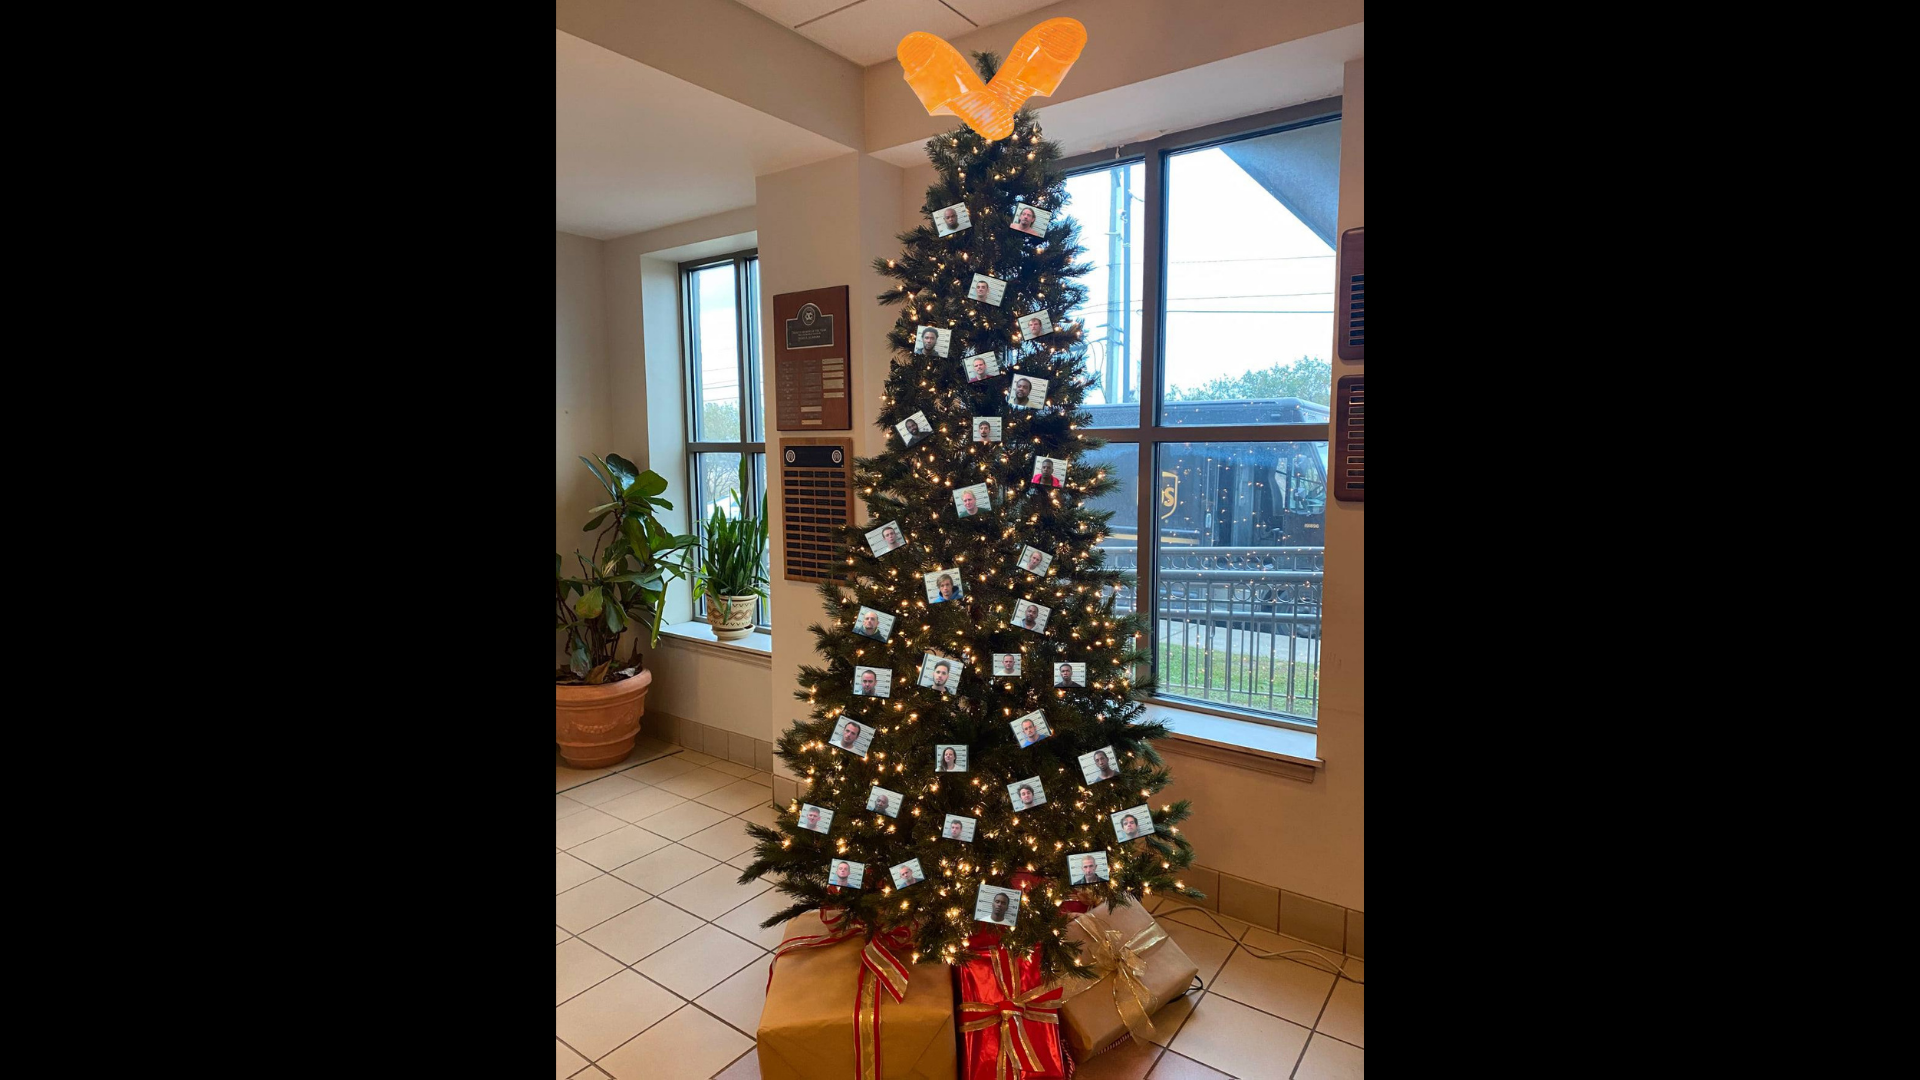 , This Sheriff's Department Decorated a Christmas 'THUG TREE' With Mugshots, Saubio Making Wealth